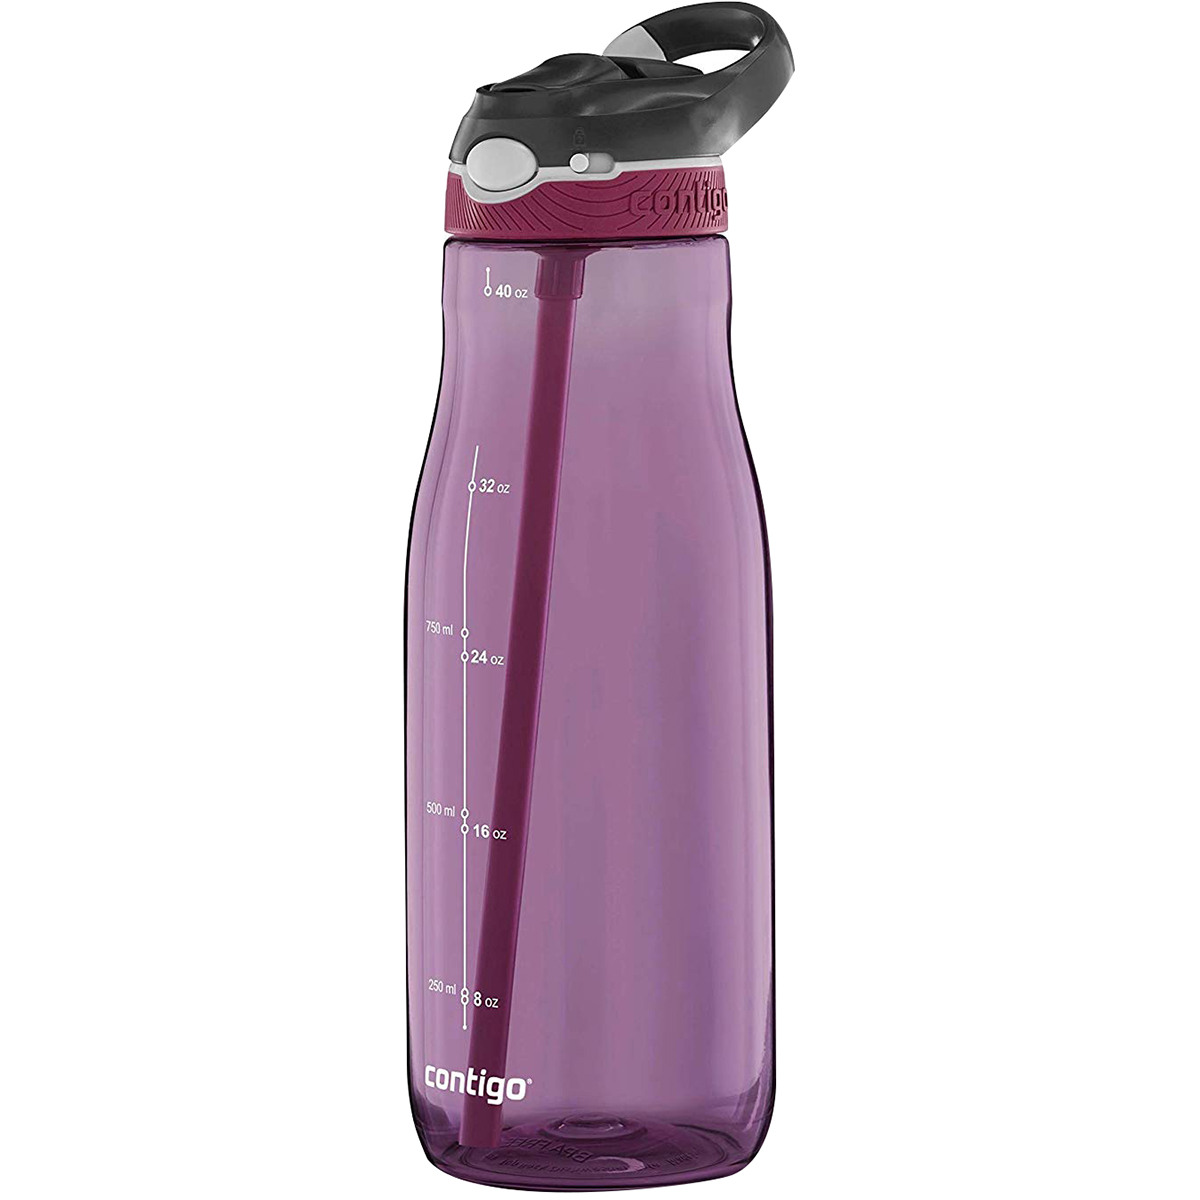 Contigo-40-oz-Ashland-Autospout-Water-Bottle thumbnail 12